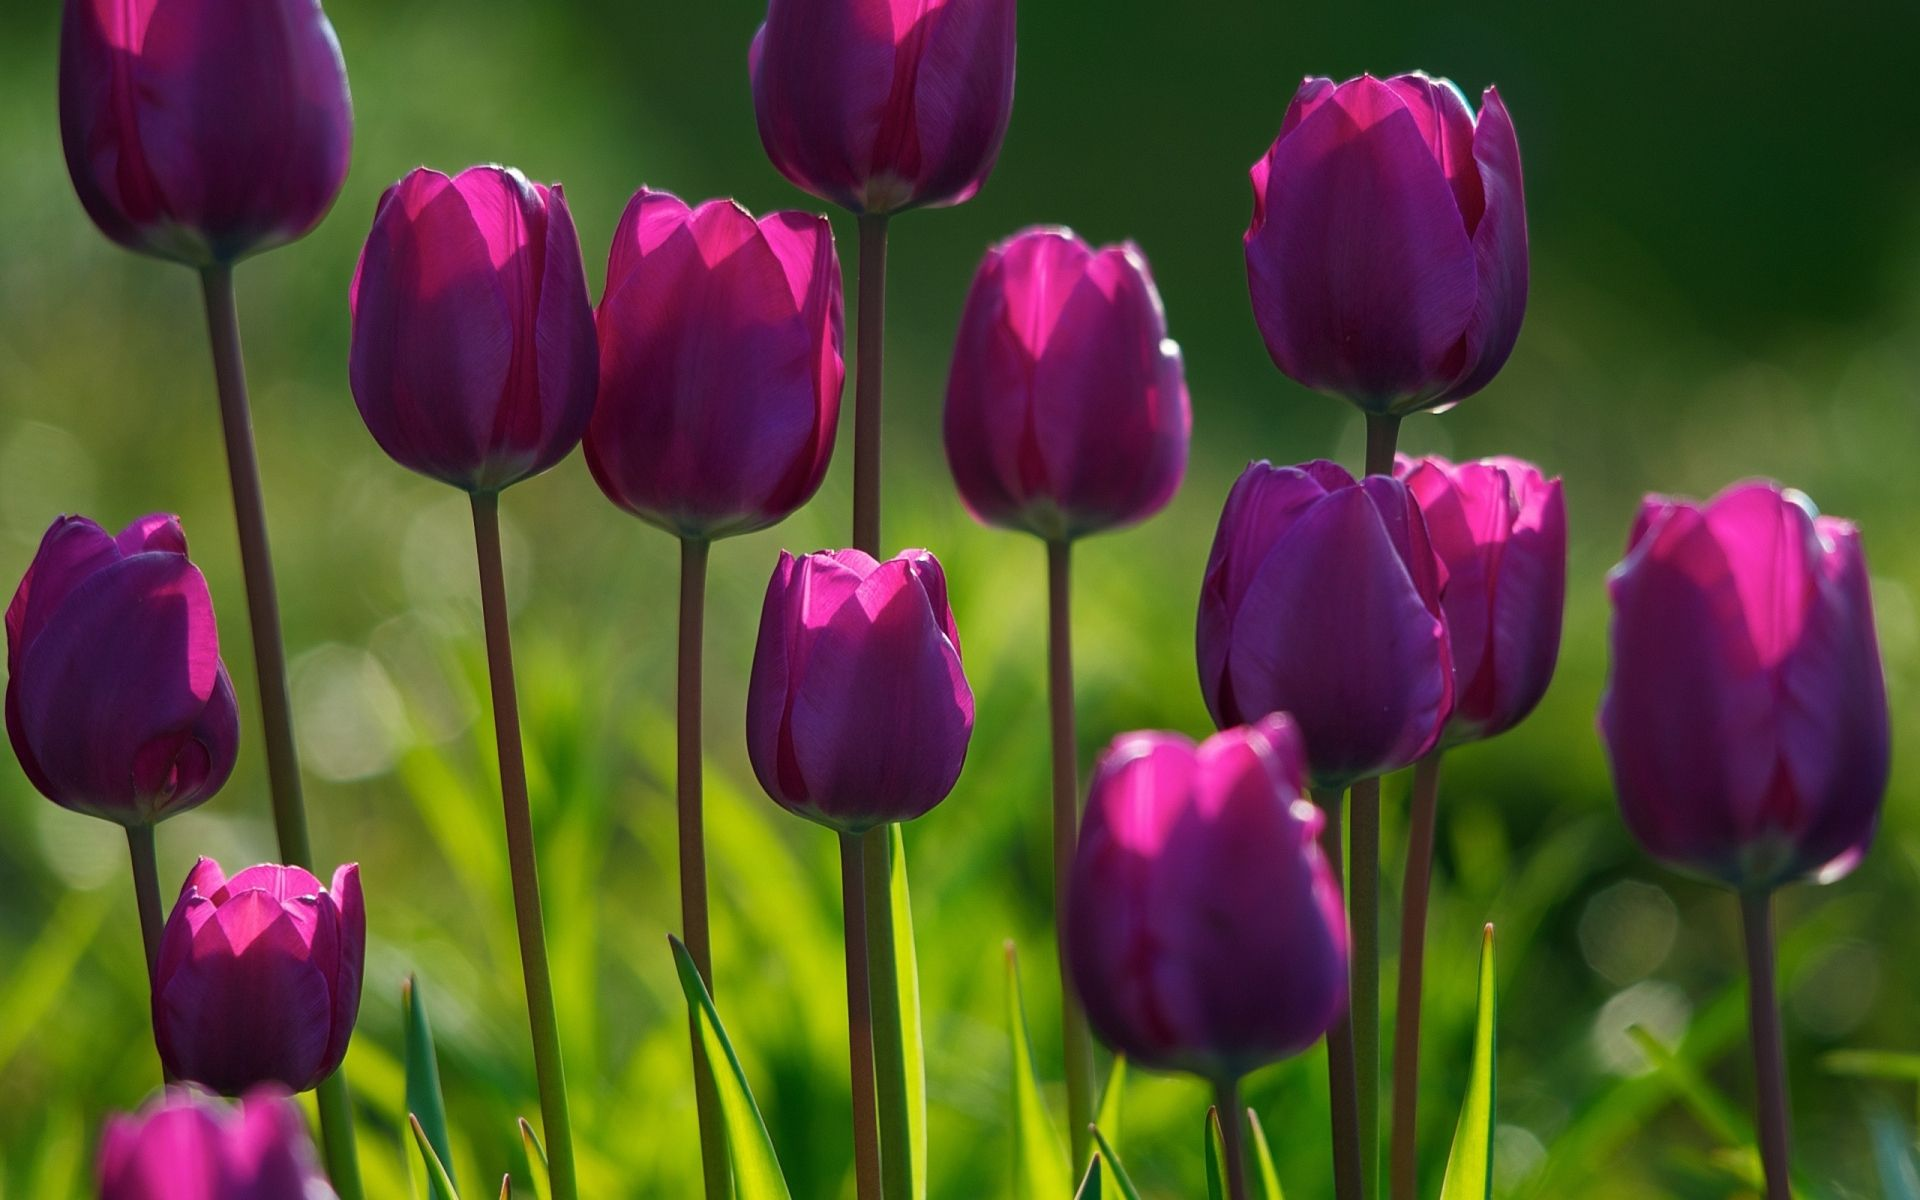 Flowers Pictures Spring Purple Tulips Flowers Wallpapers 1920x1200 1384757 Spring Flowers Wallpaper Purple Flowers Wallpaper Purple Tulips